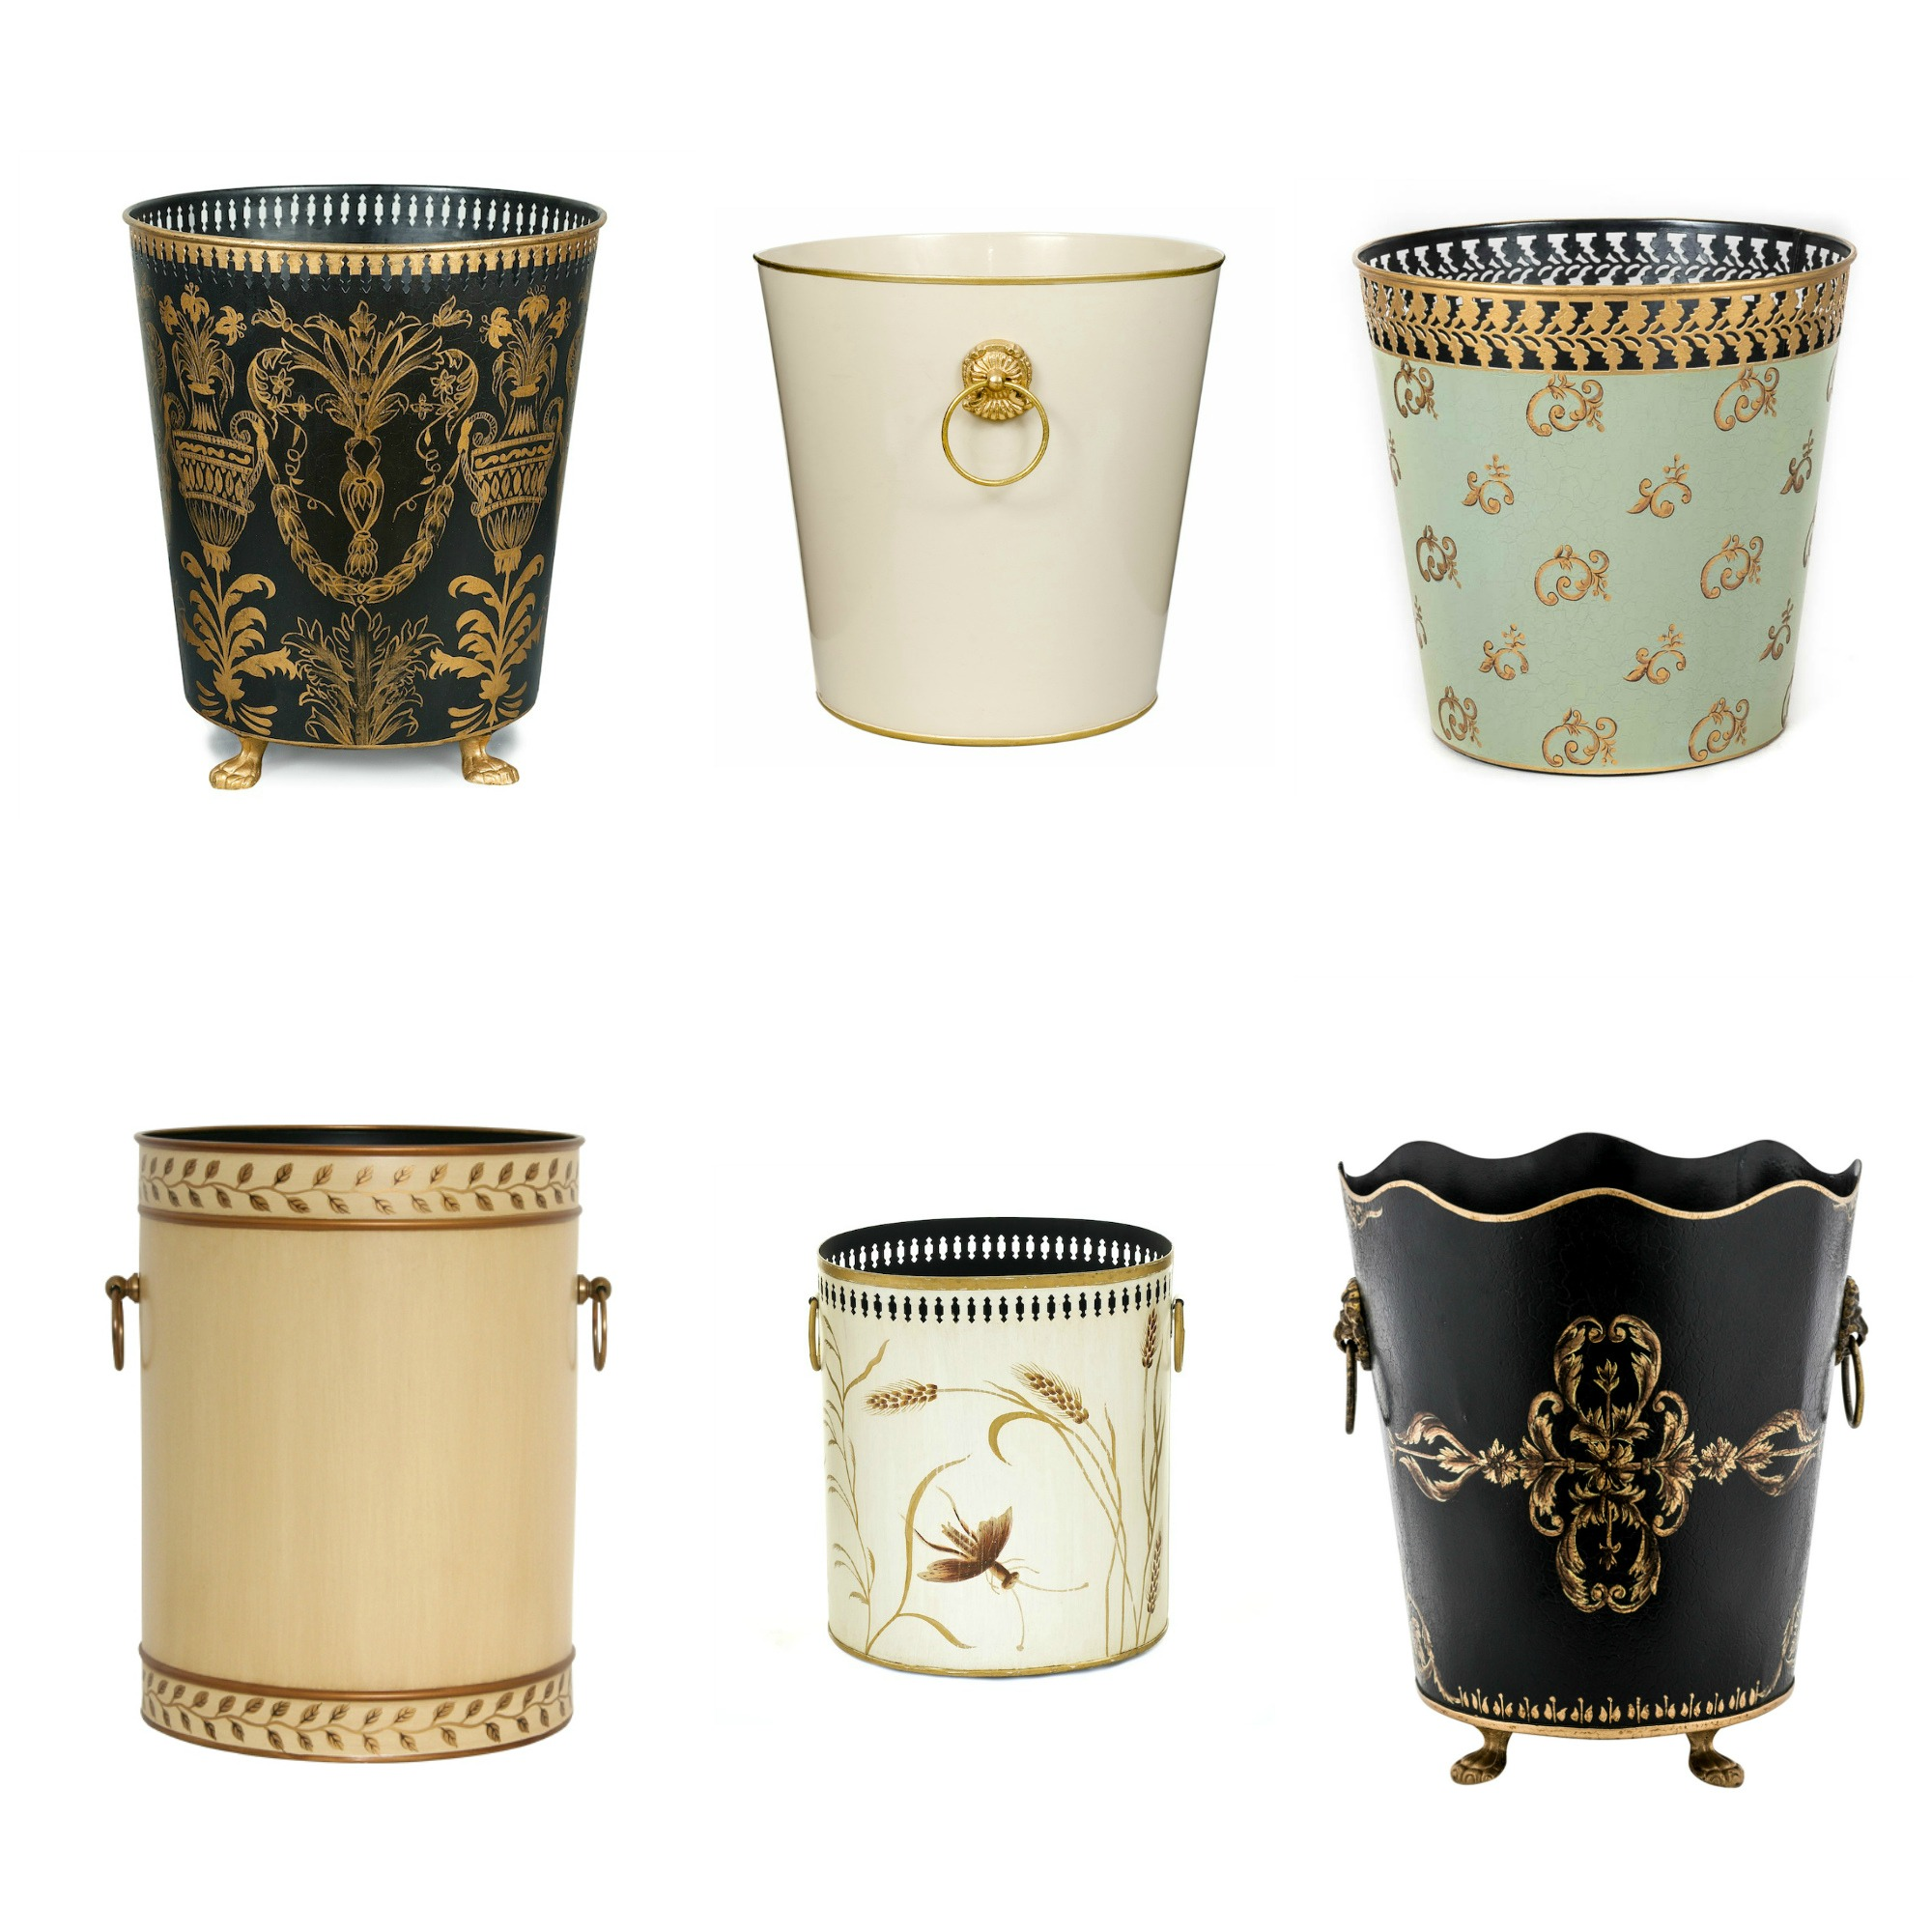 English Country House Room Decor Waste Paper Bins Baskets